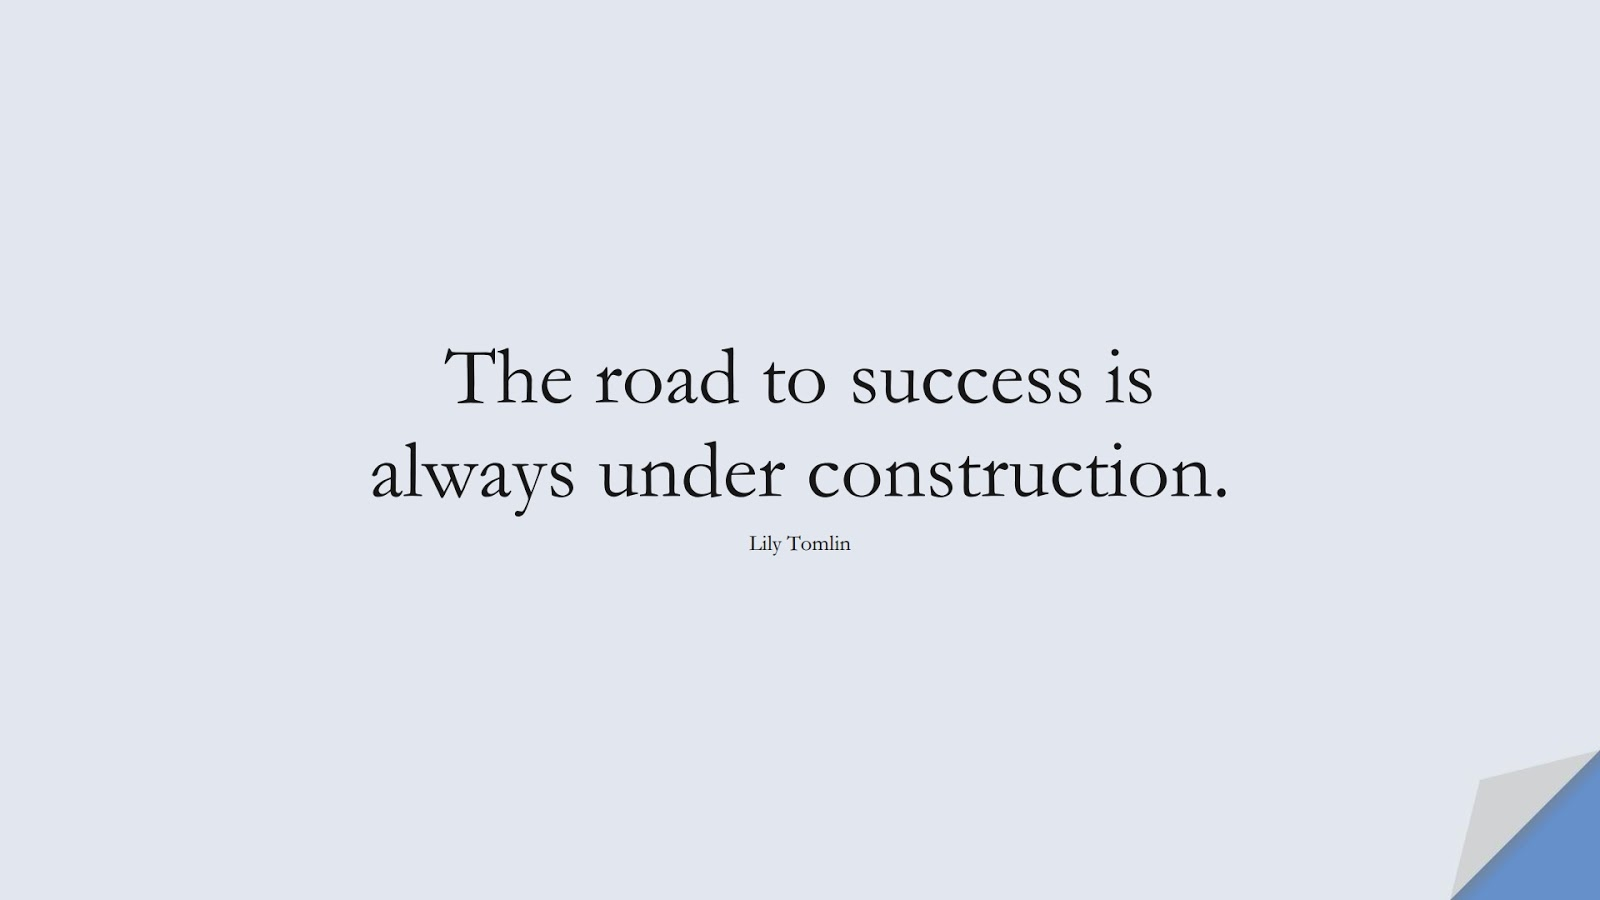 The road to success is always under construction. (Lily Tomlin);  #PositiveQuotes